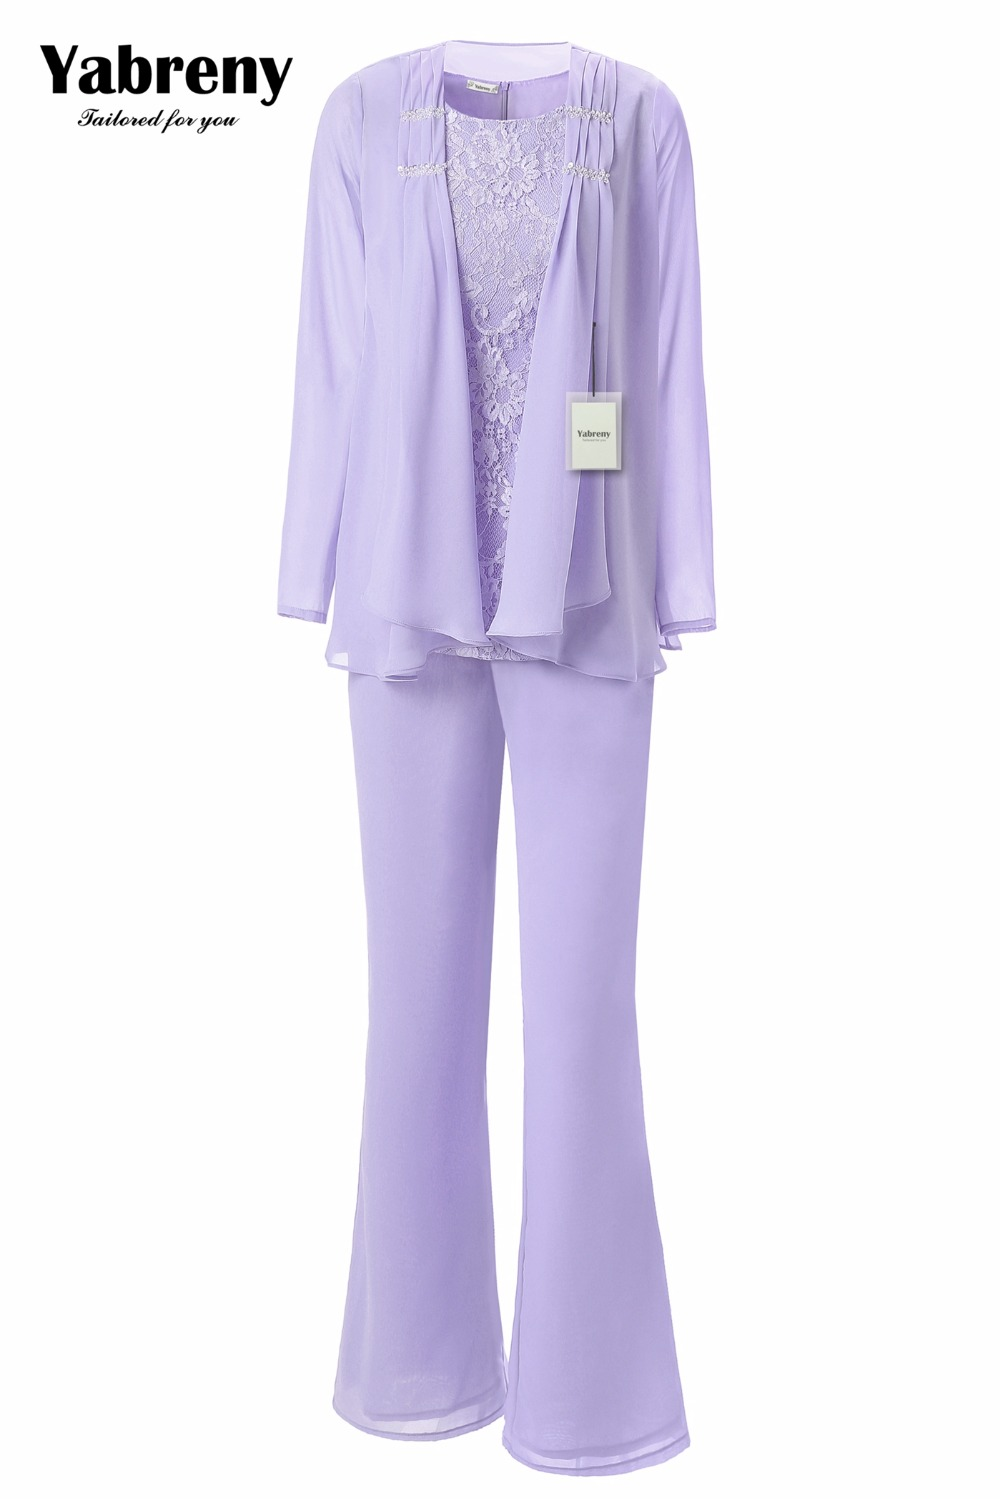 Yabreny Elegant Mother of the Bride Pants suit Lavender Chiffon Outfit for Special occasion MT001704 2-in Mother of the Bride Dresses from Weddings & Events